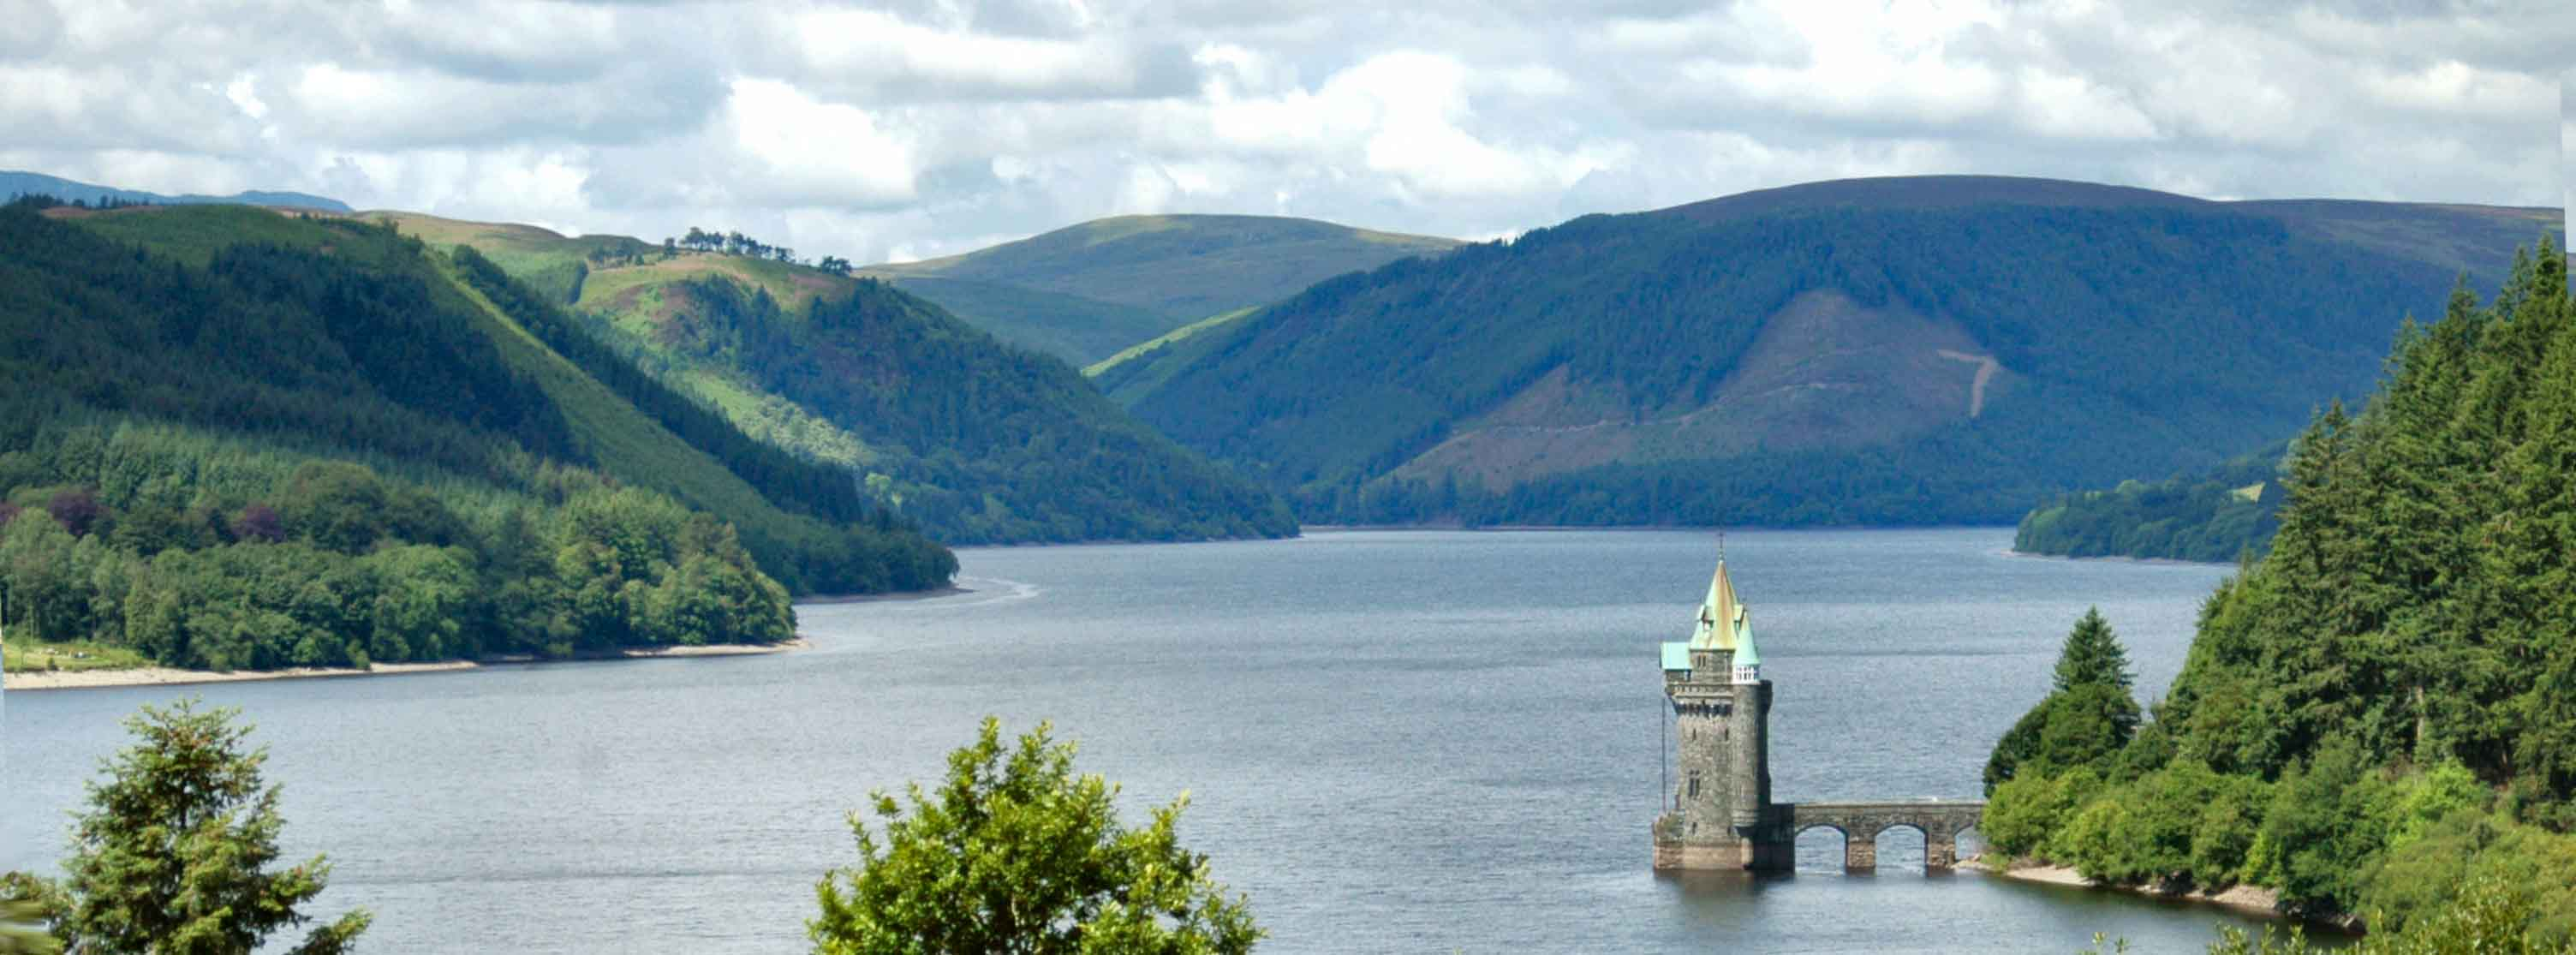 Lake-Vyrnwy-header1